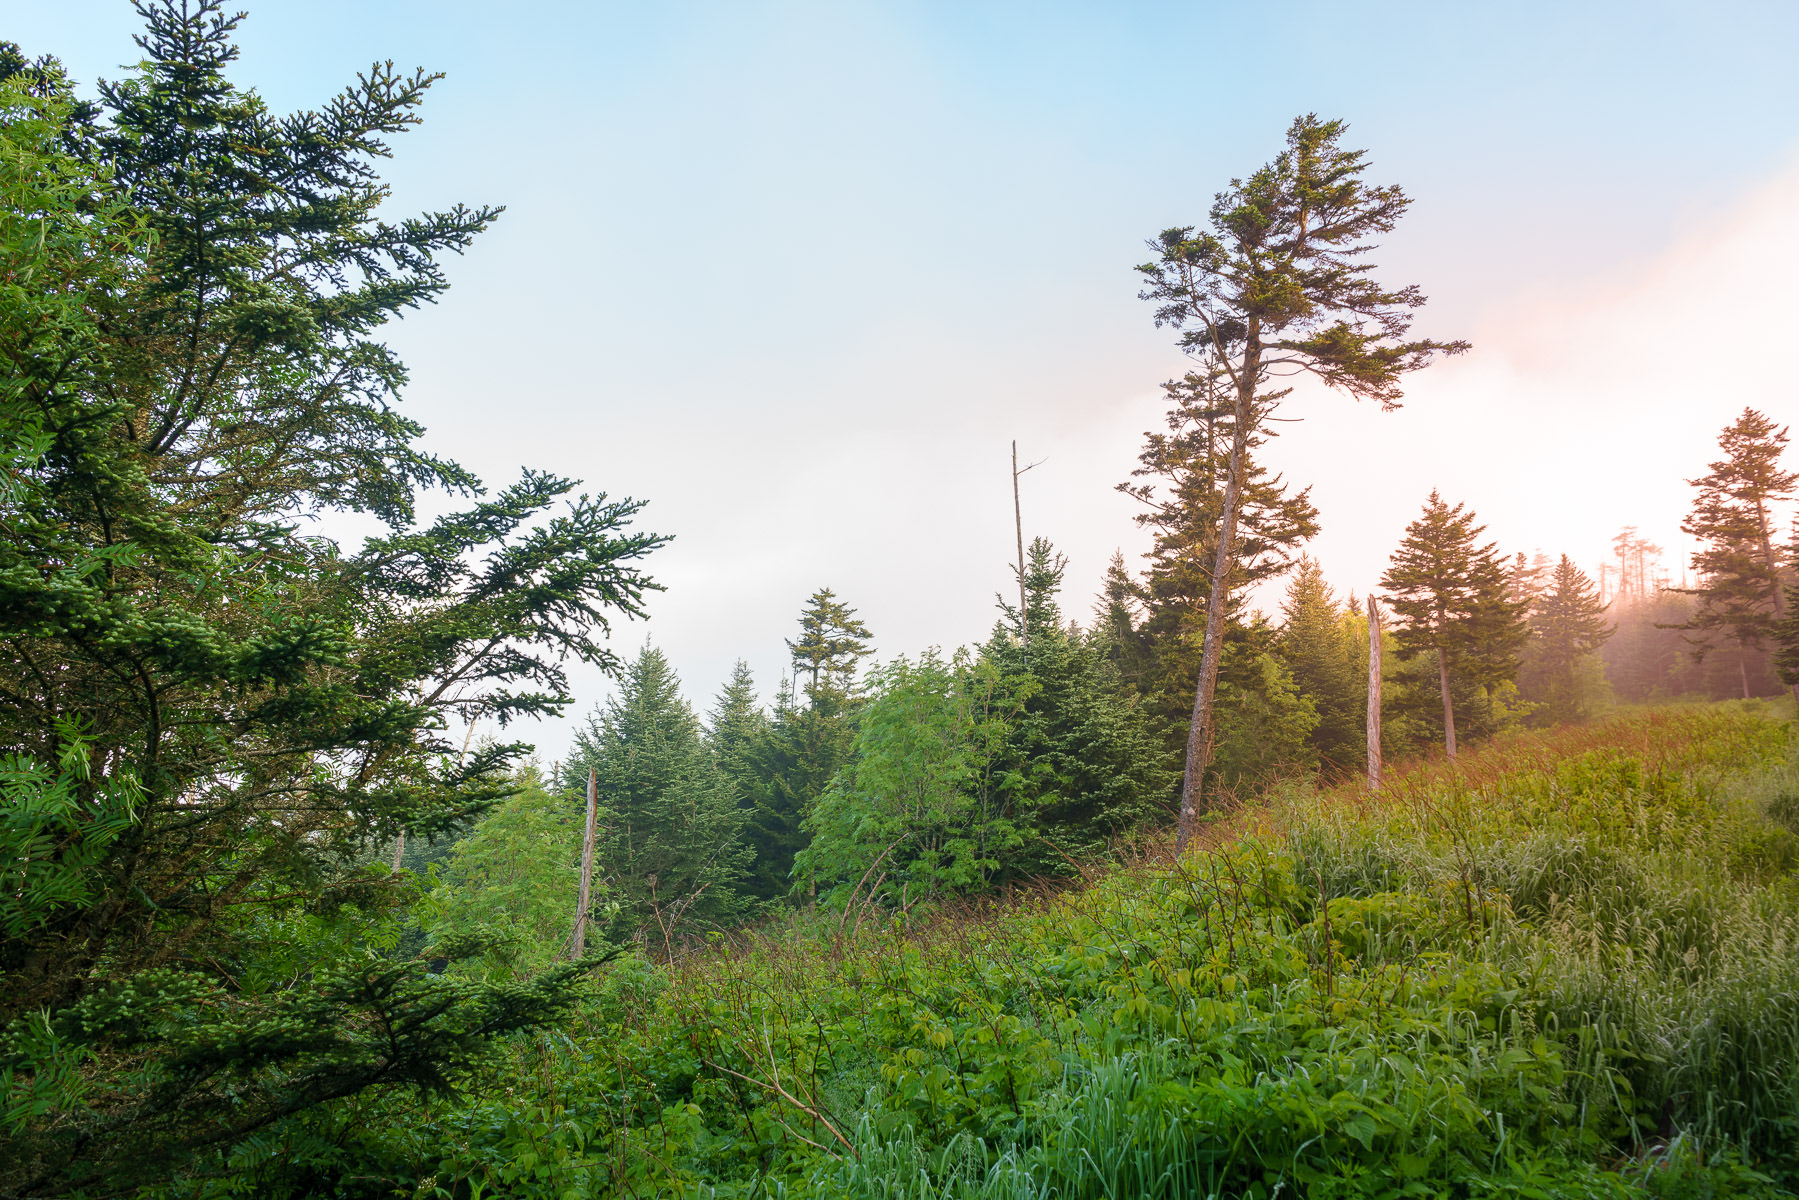 The sun rises on the slopes of Clingmans Dome in the Great Smoky Mountains National Park, Tennessee.